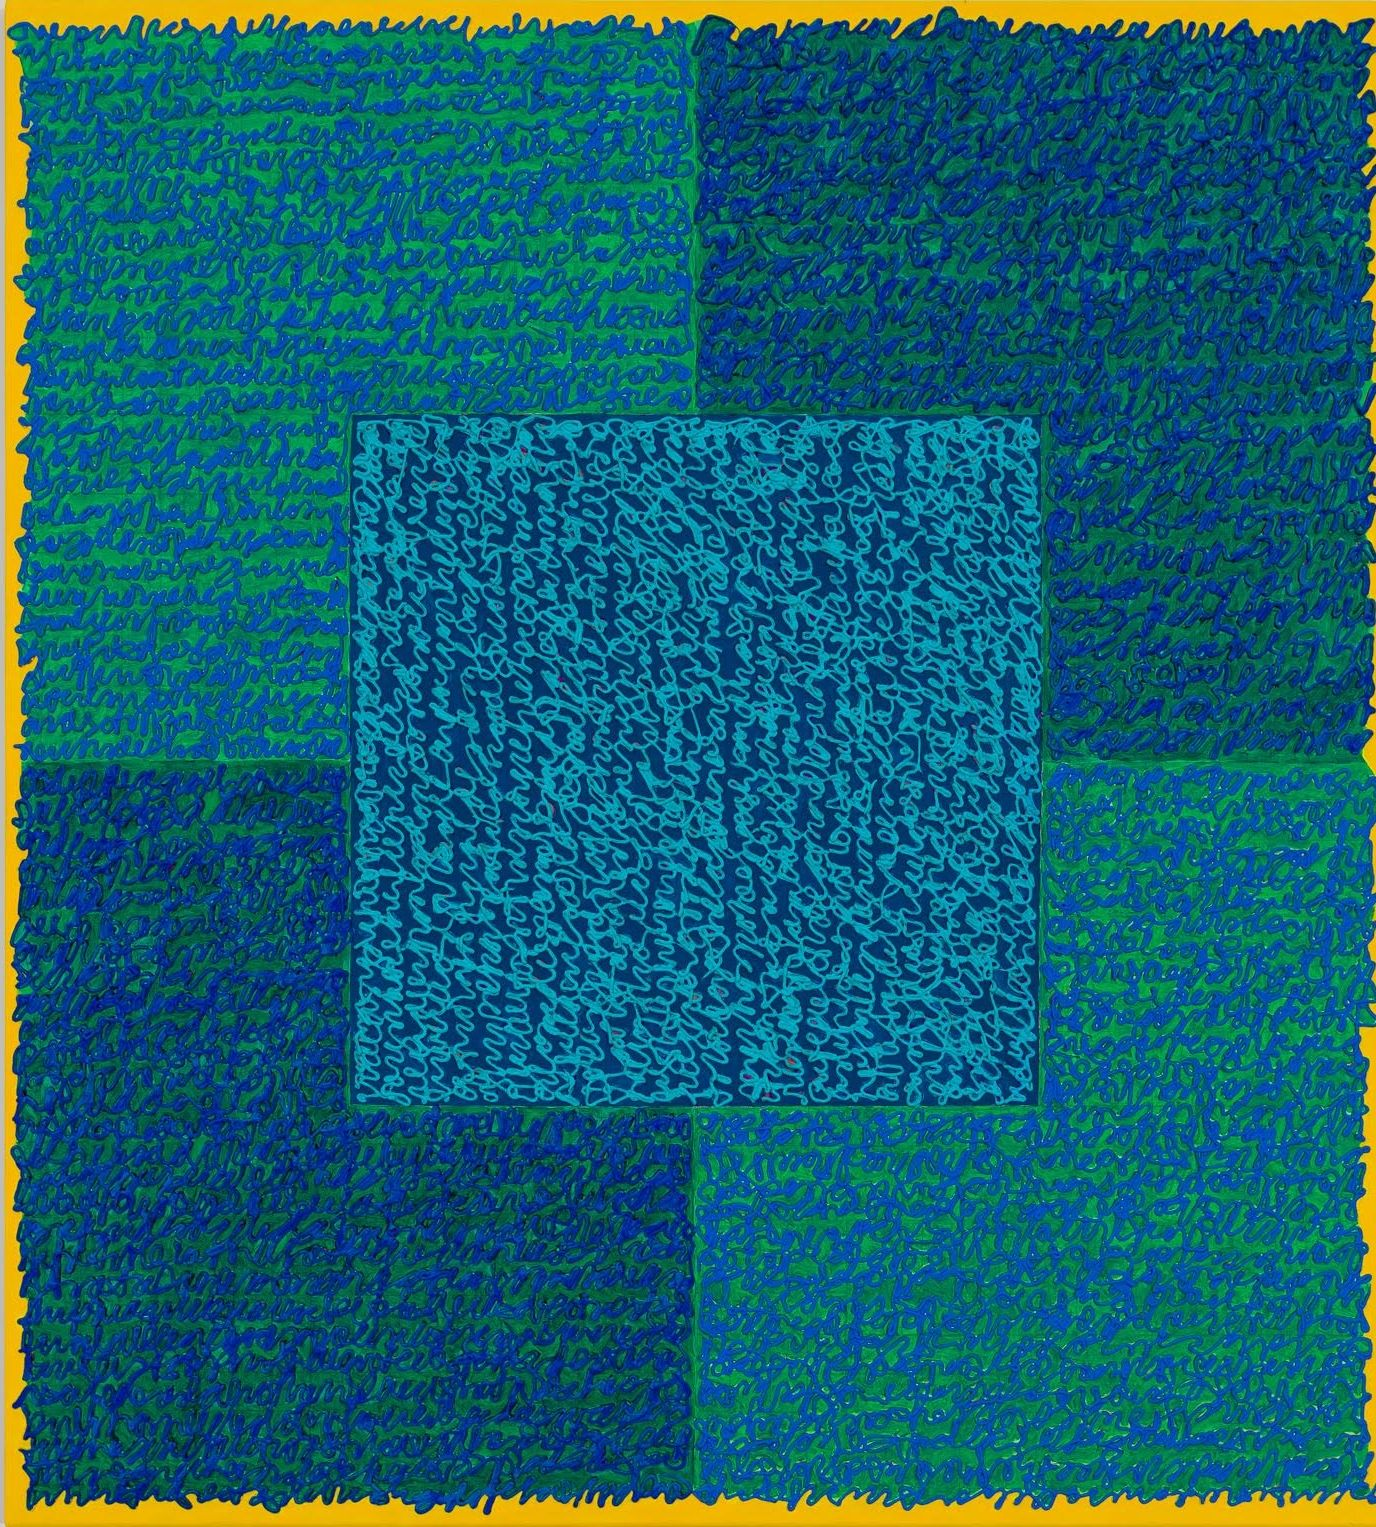 Louise P. Sloane, Fated 7, 2016, Acrylic paint and pastes on aluminum panel, 40 x 36 inches, signed, titled and dated on the verso, four rectangles and a central square (teal, blue, and yellow edges) with personal text written over the squares in blue to create three dimensional texture. Louise P. Sloane has been creating abstract paintings since 1974.